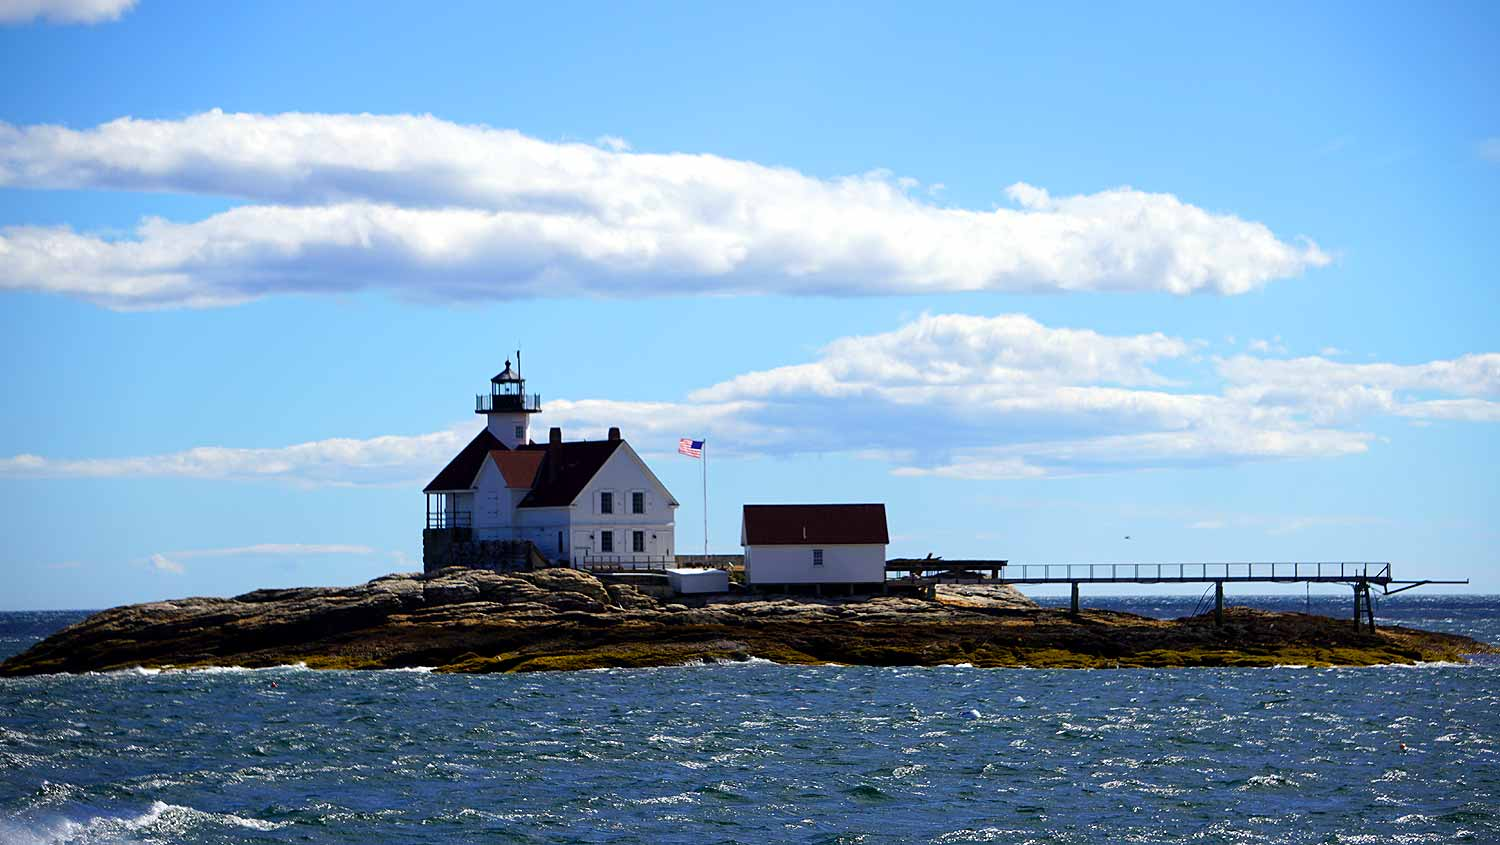 cuckholds lighthouse in maine